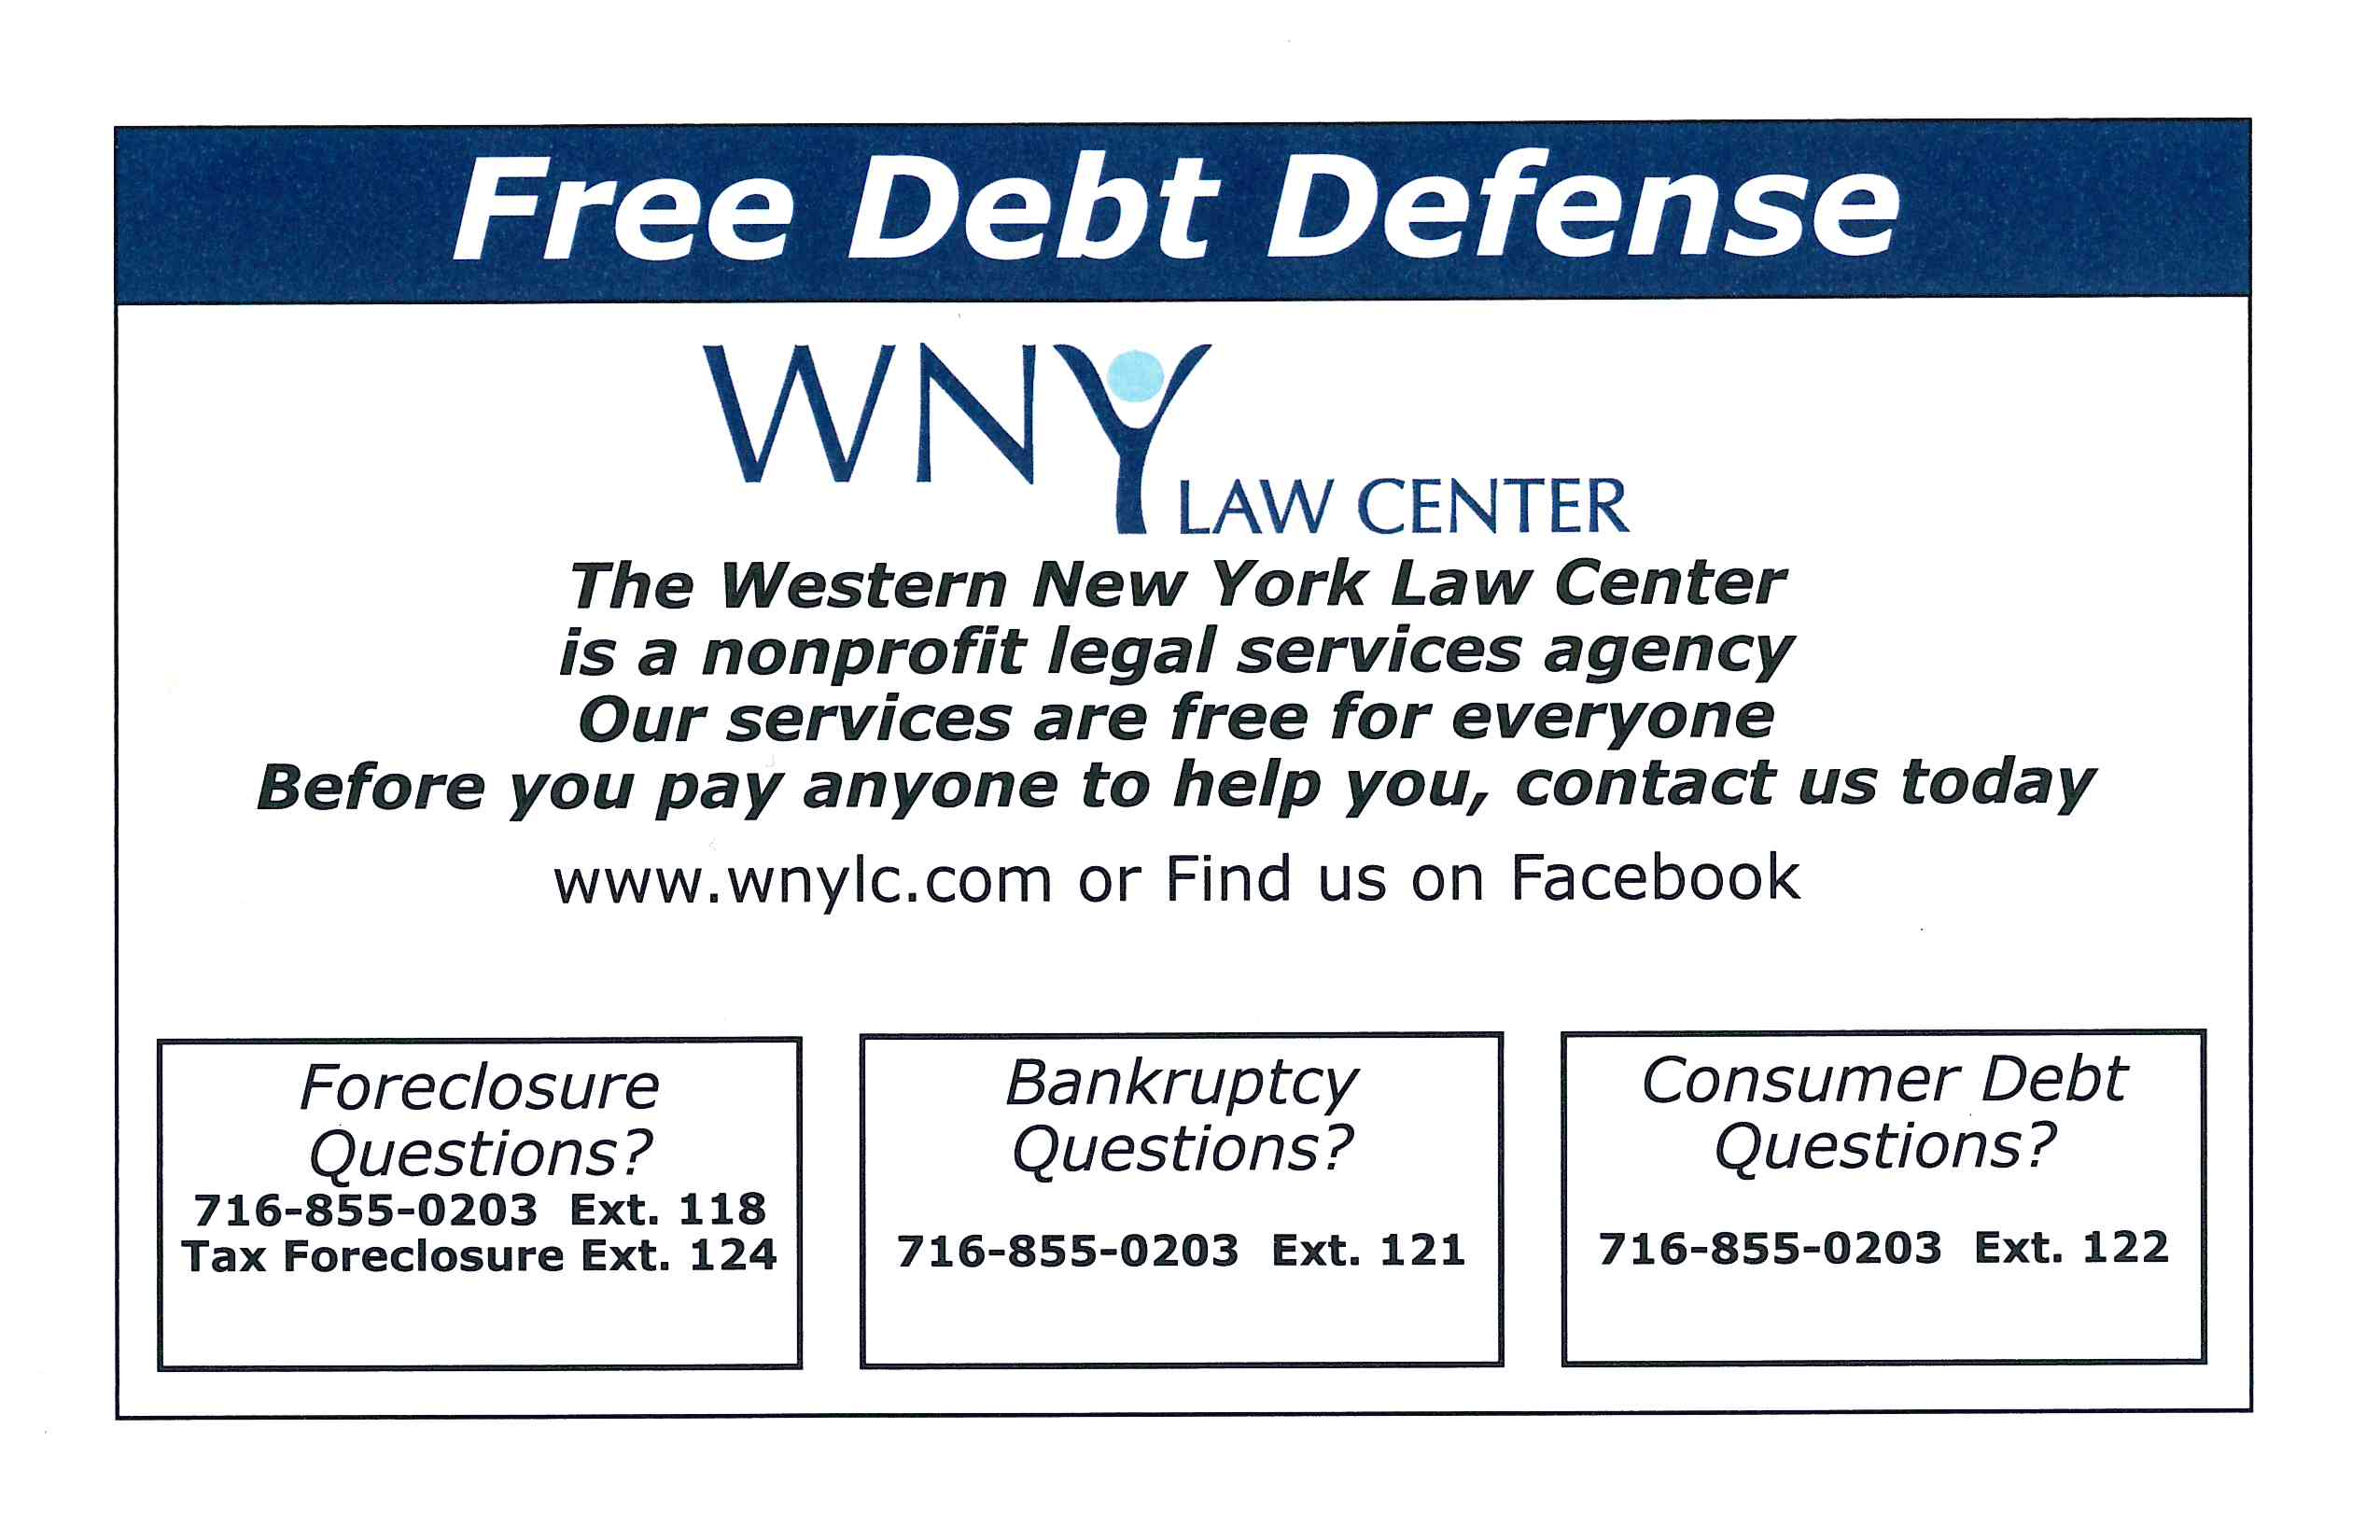 Free Debt Defense WNY Law Ctr Flyer